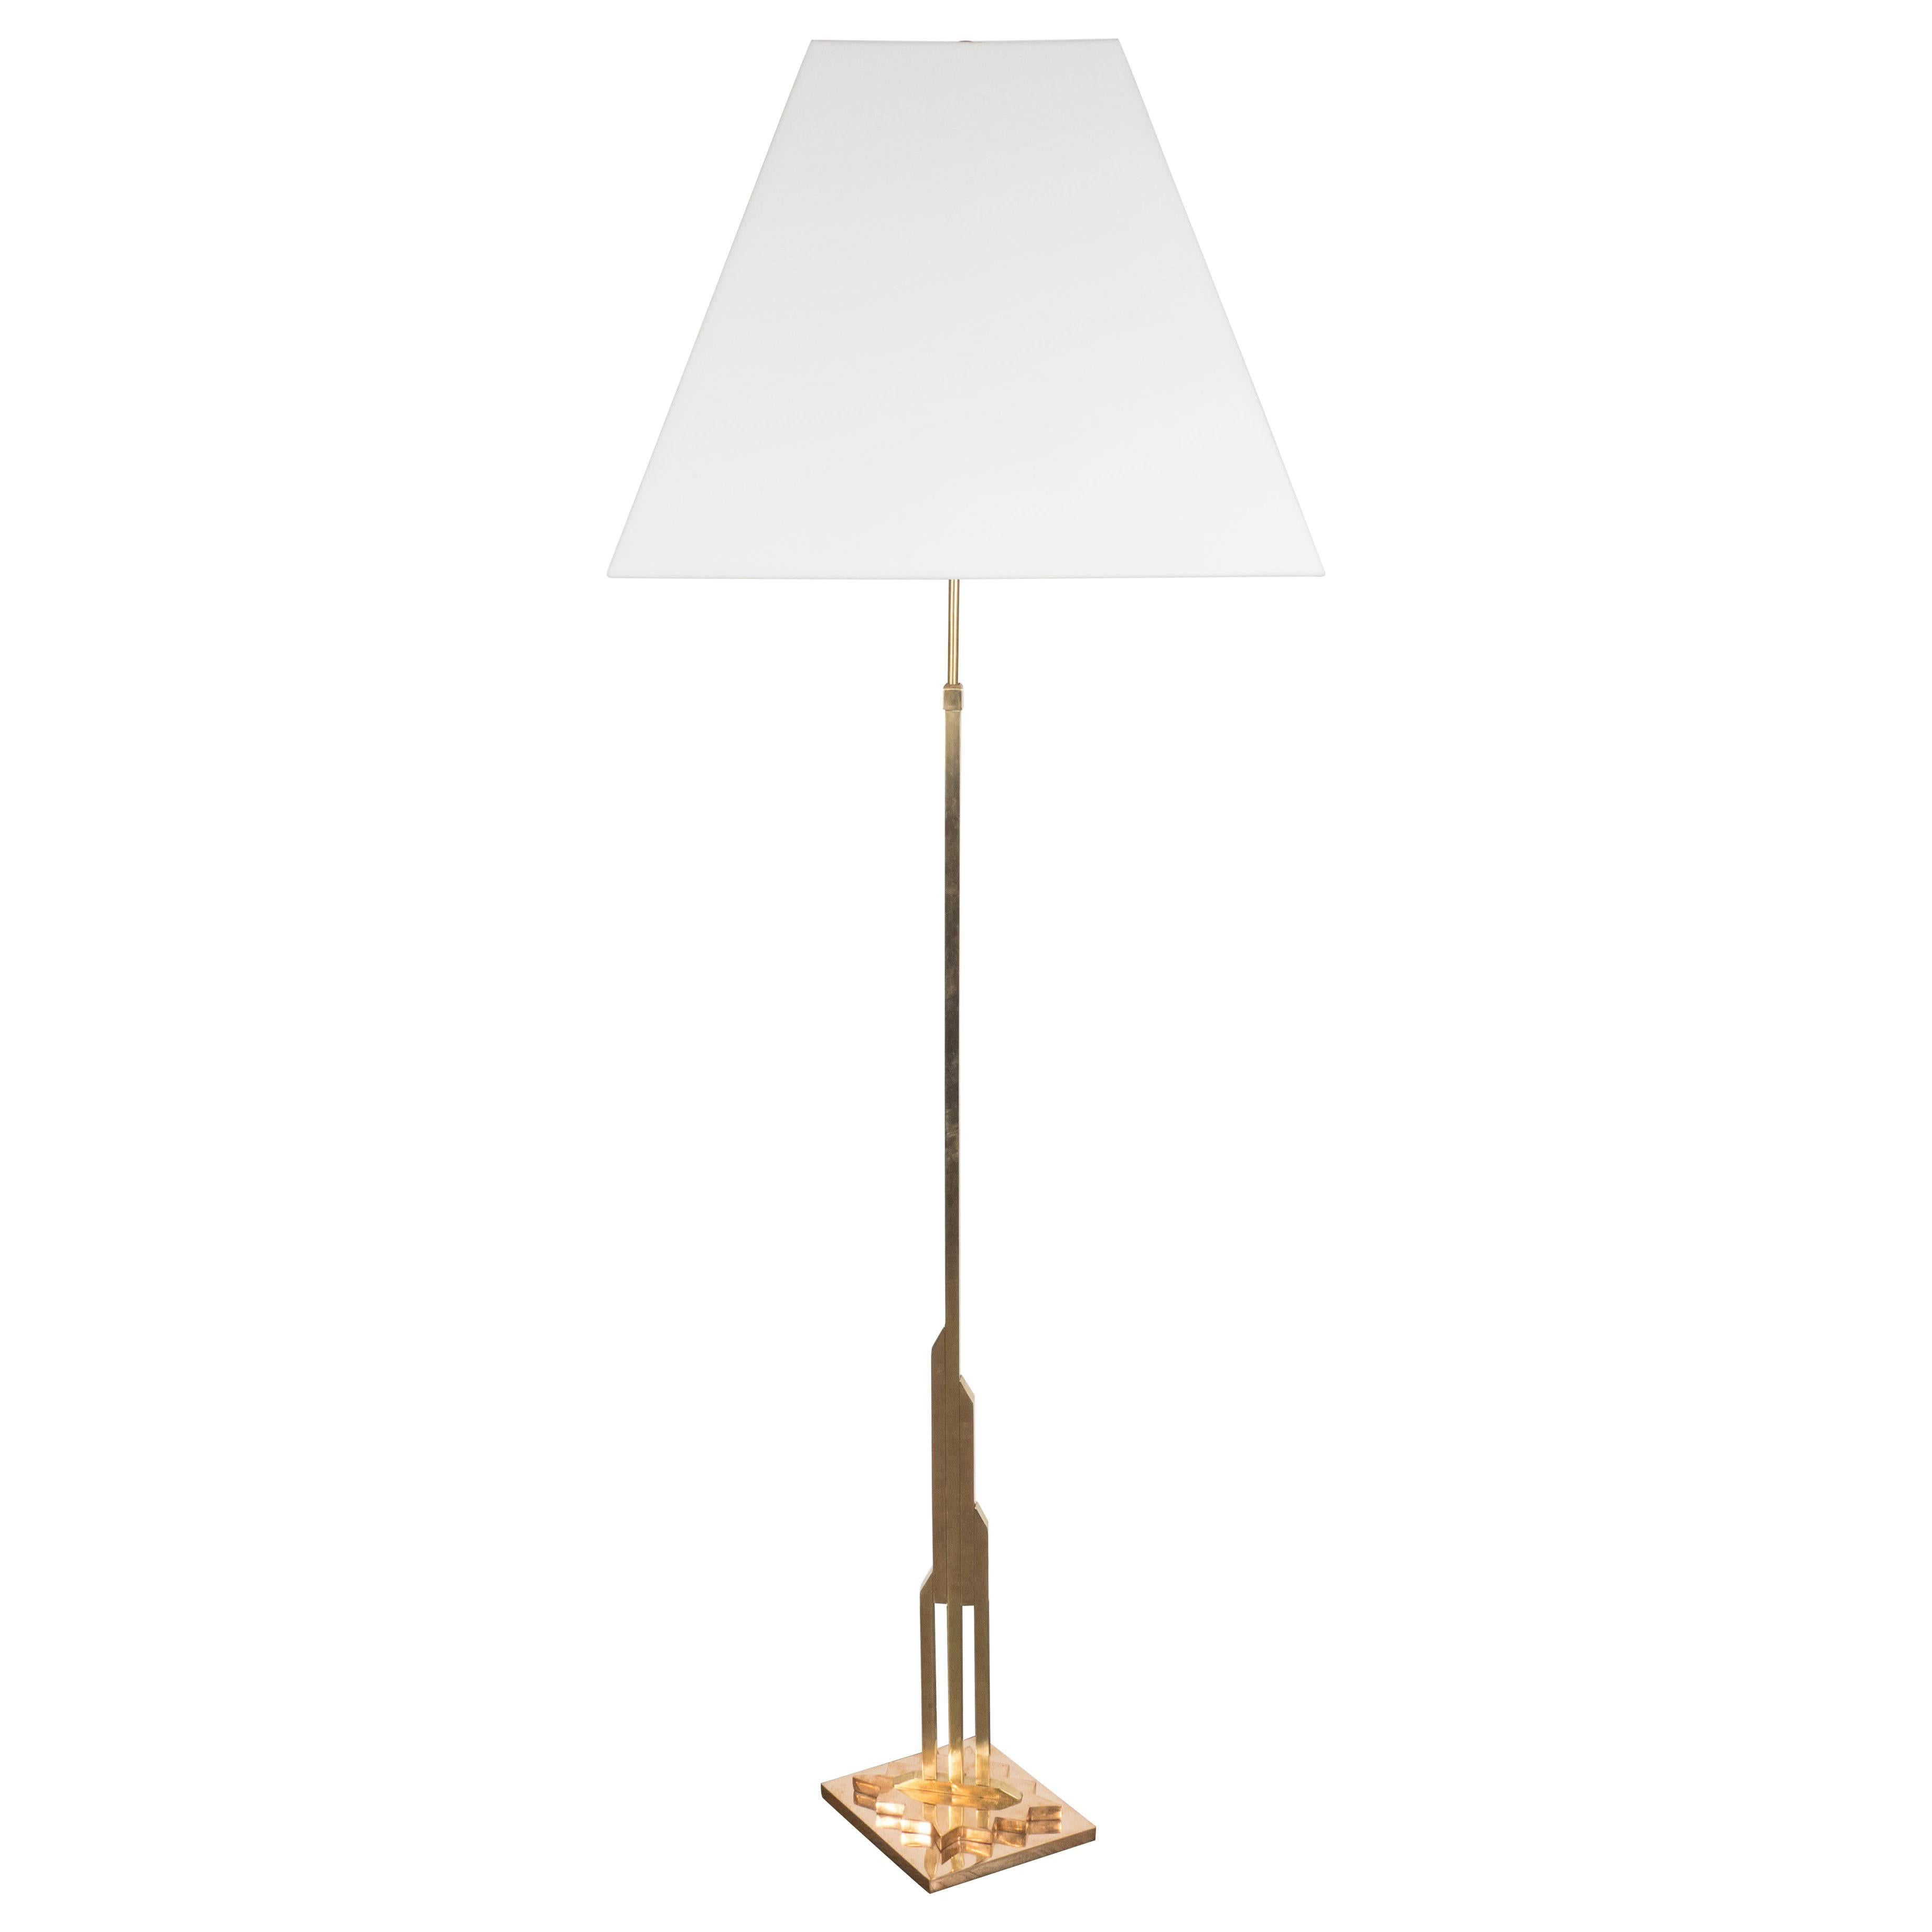 Mid-Century Modernist Floor Lamp in Polished Brass with Custom Lucite Shade